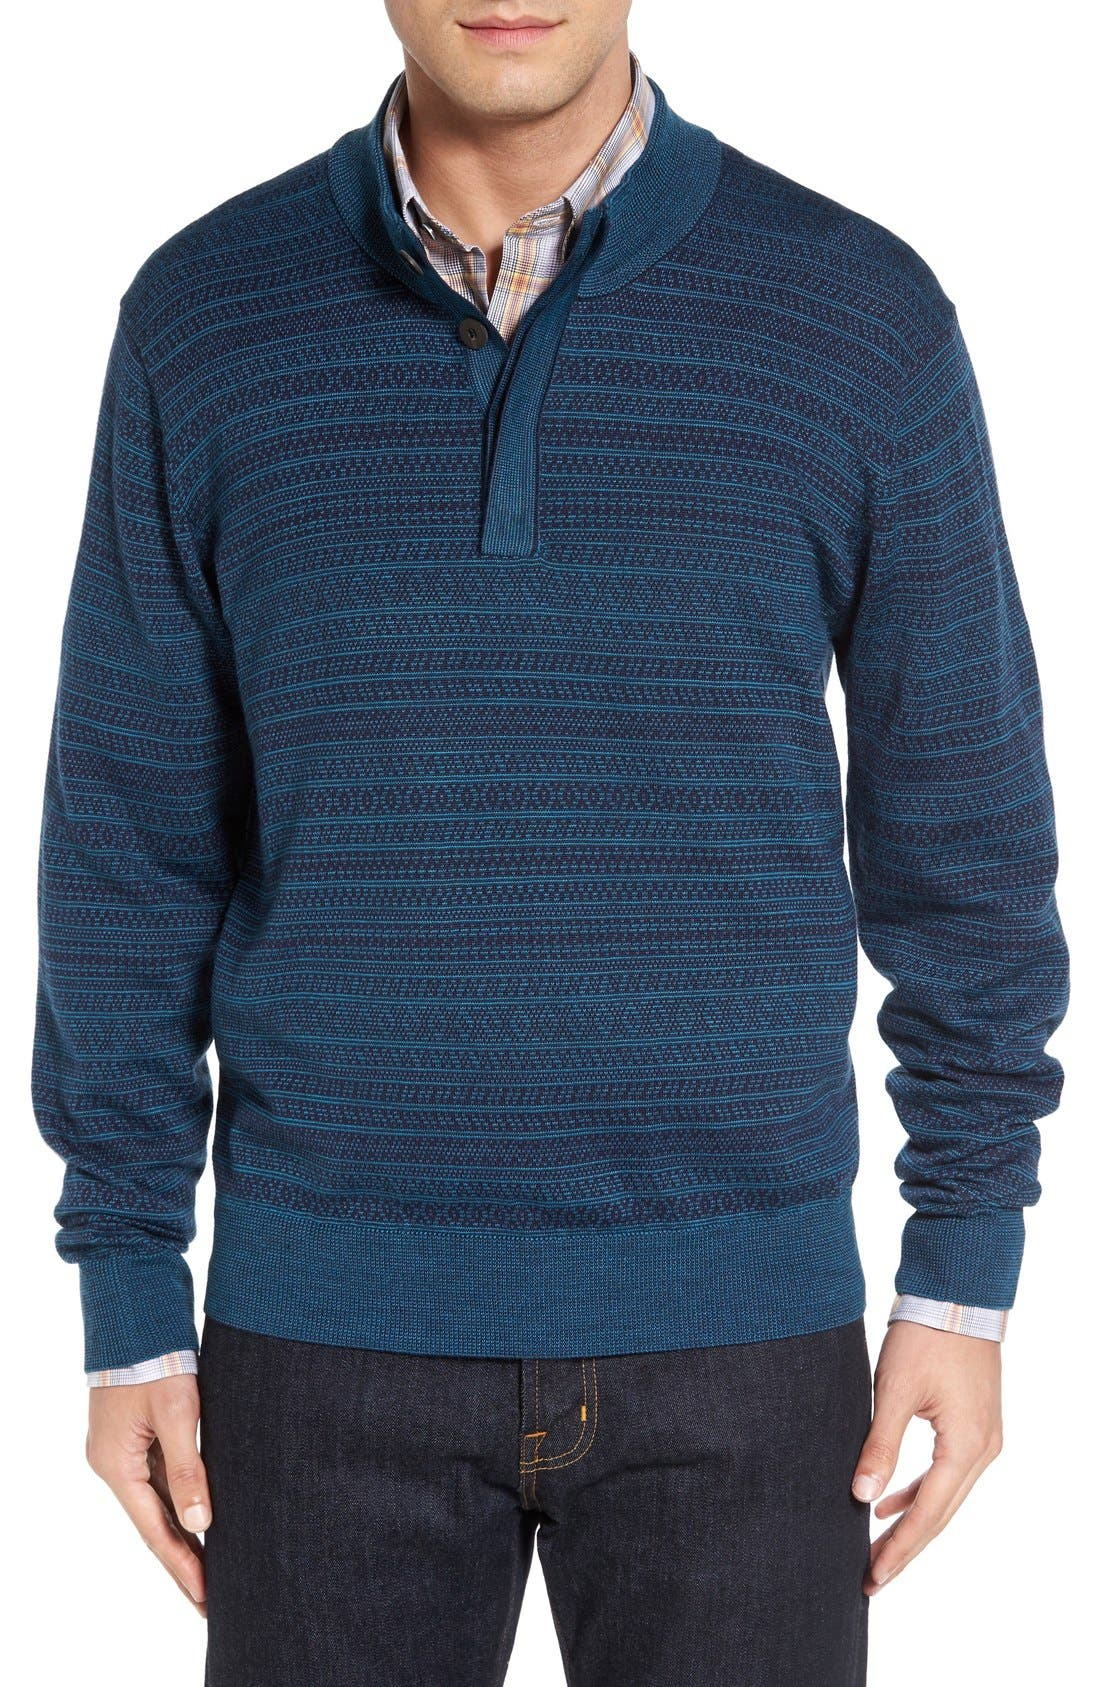 Alternate Image 1 Selected - Cutter & Buck 'Douglas Forest' Jacquard Wool Blend Sweater (Big & Tall)